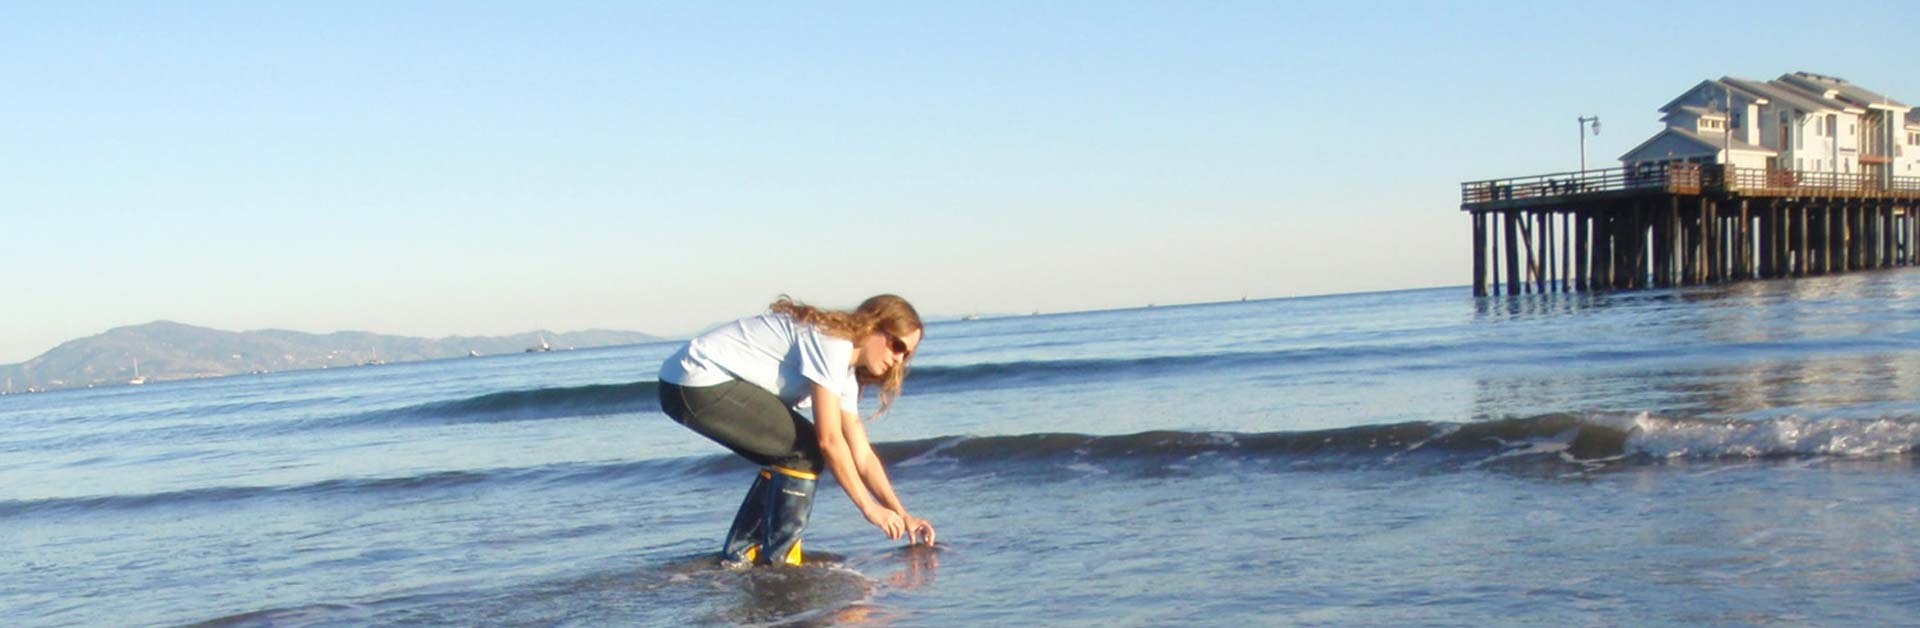 Santa Barbara Channelkeeper team member collecting water samples in the surf at a local beach for testing.